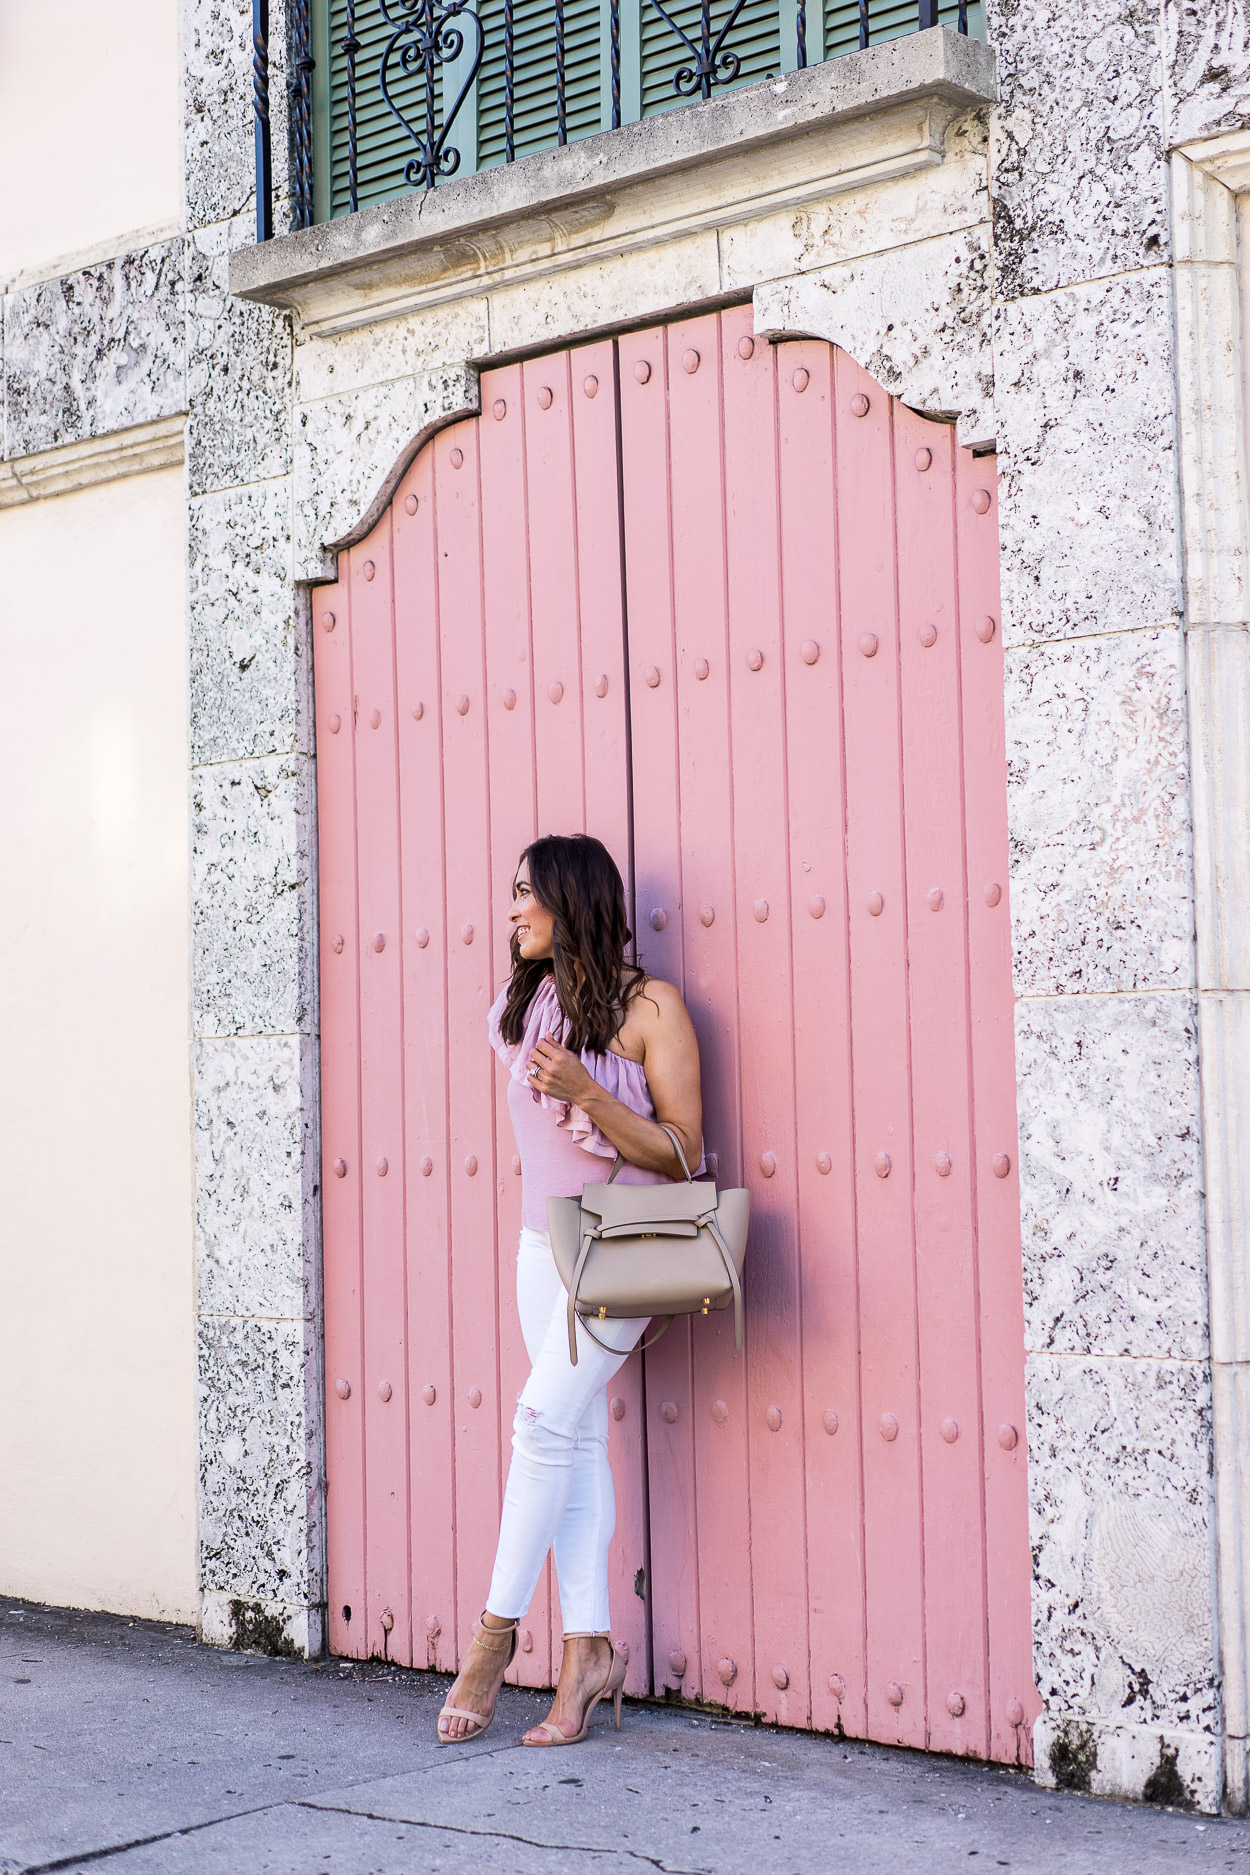 ... AGlamLifestyle blogger shares Celine Belt Bag review and how she wears  it around town ... 27edf644c7909